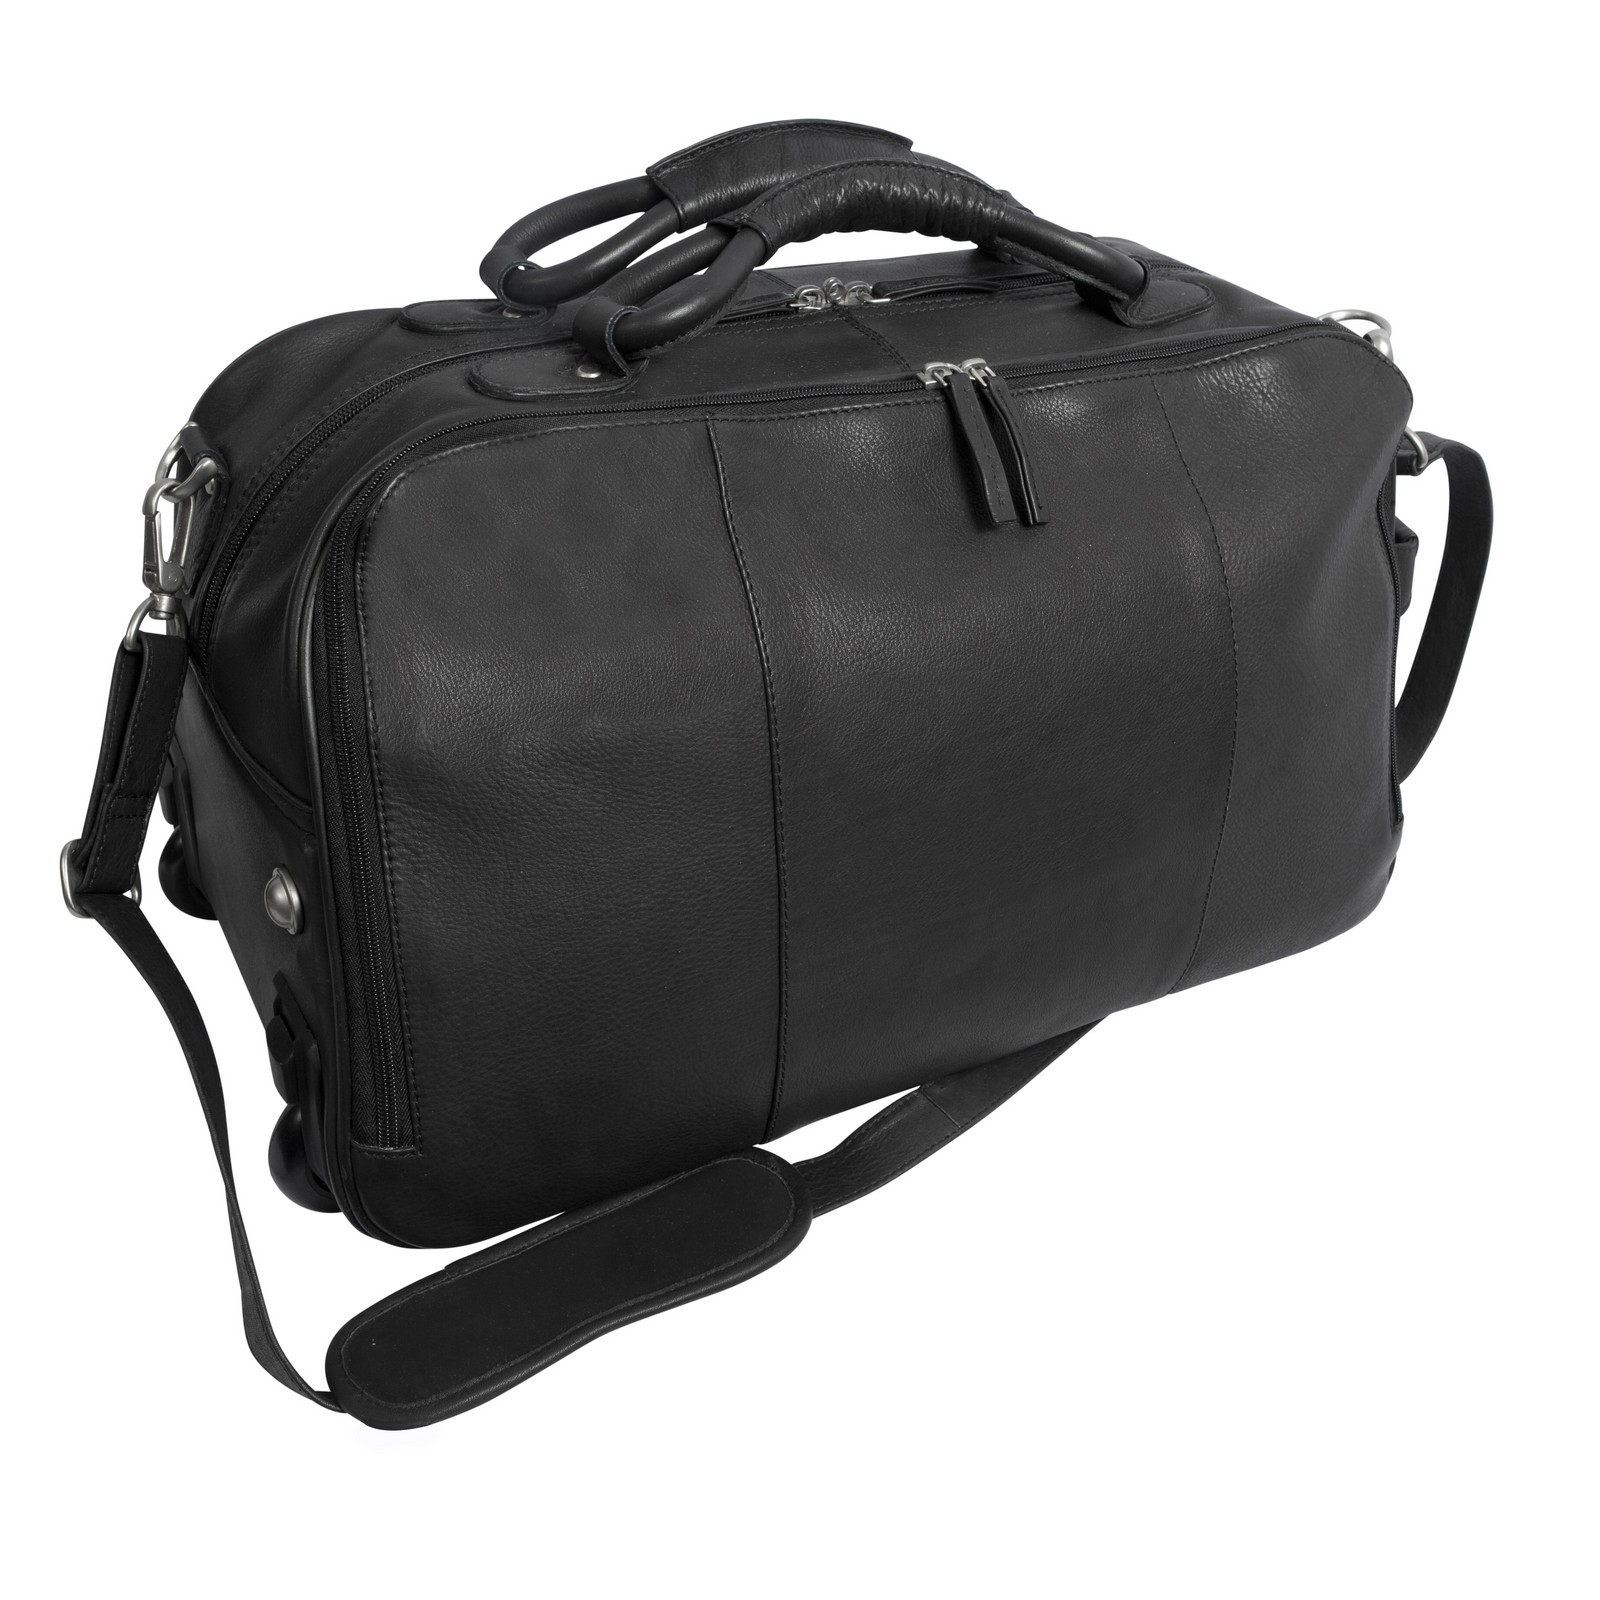 Canyon Outback Leather Wildcat Canyon 20-Inch Rolling Leather Duffel Bag - Black